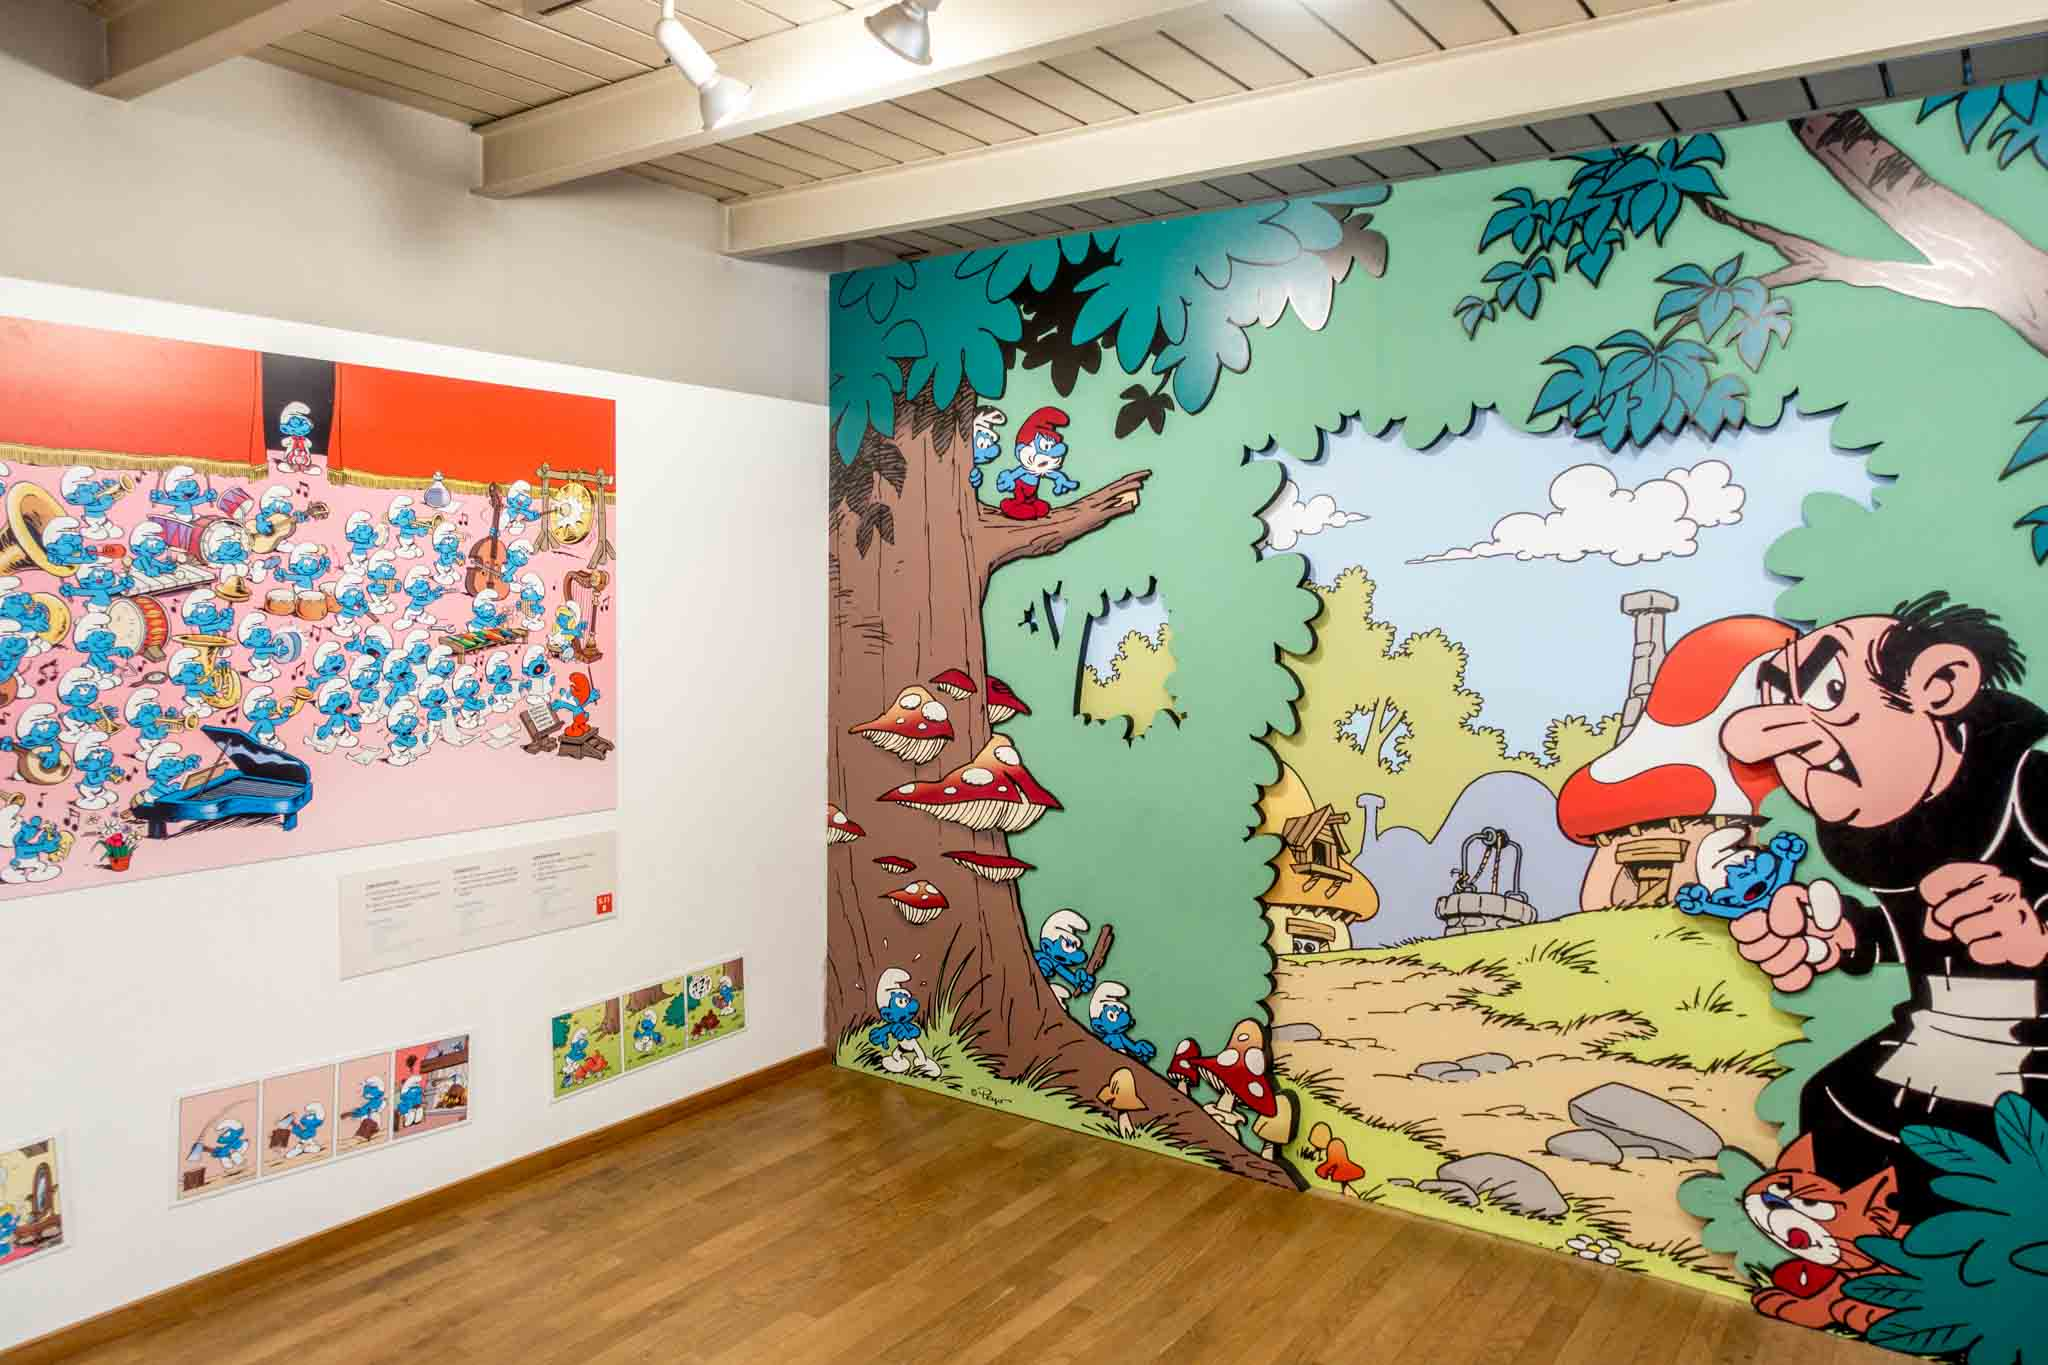 Cartoons drawings from The Smurfs that are displayed in a museum